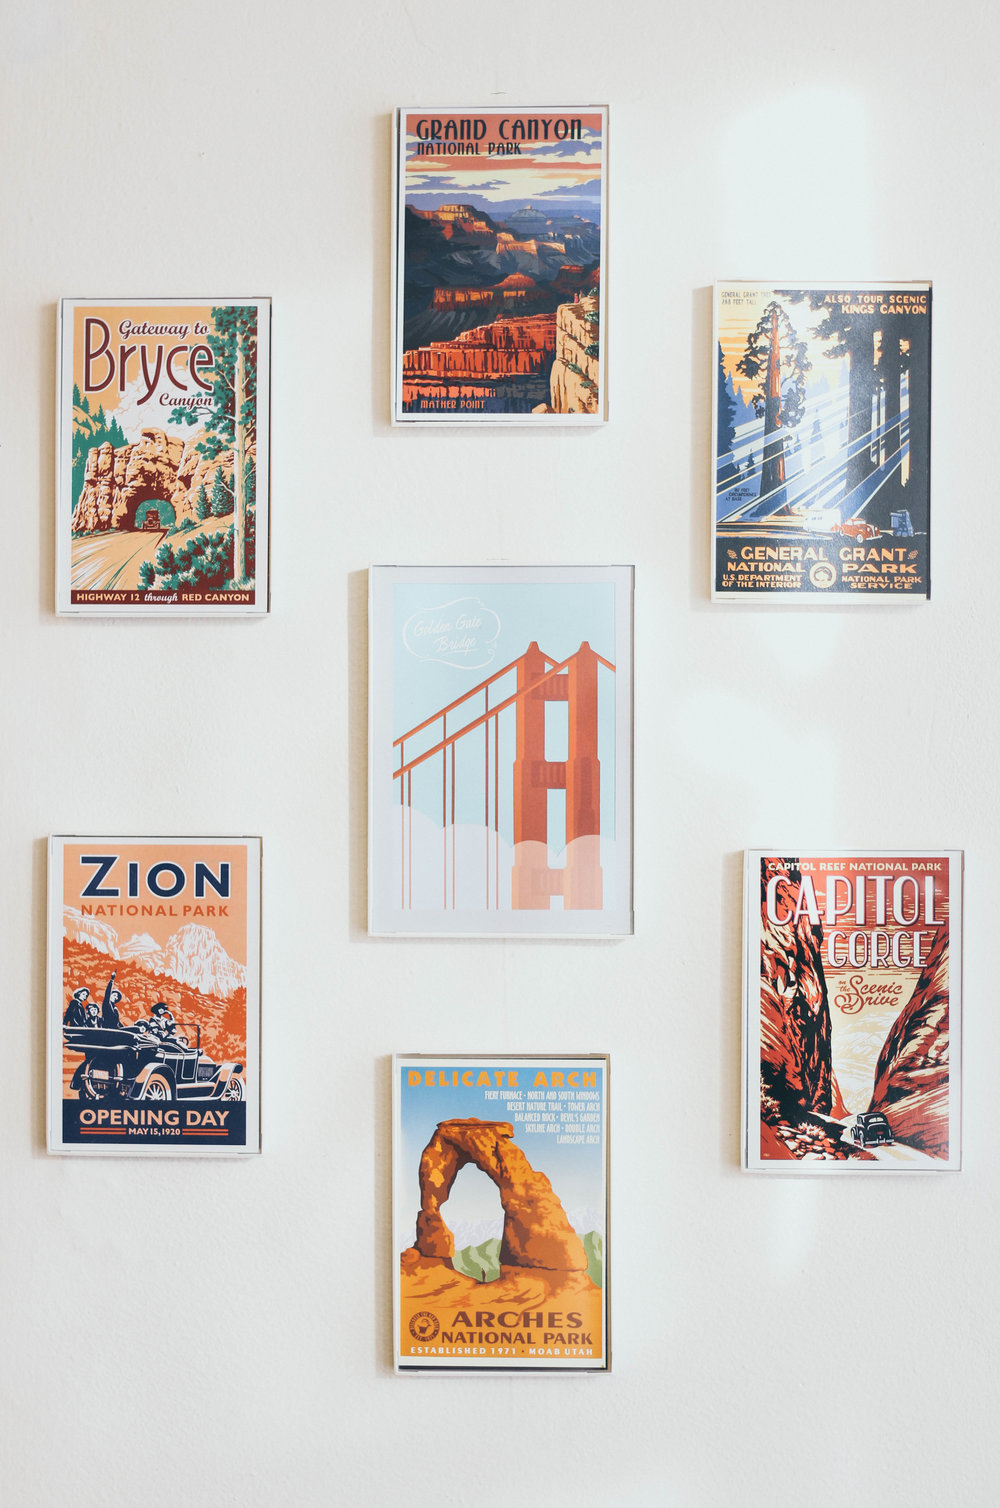 Postcards from all of the places my sister and I went on our big road trip this past summer! I loved the vintage look of these.